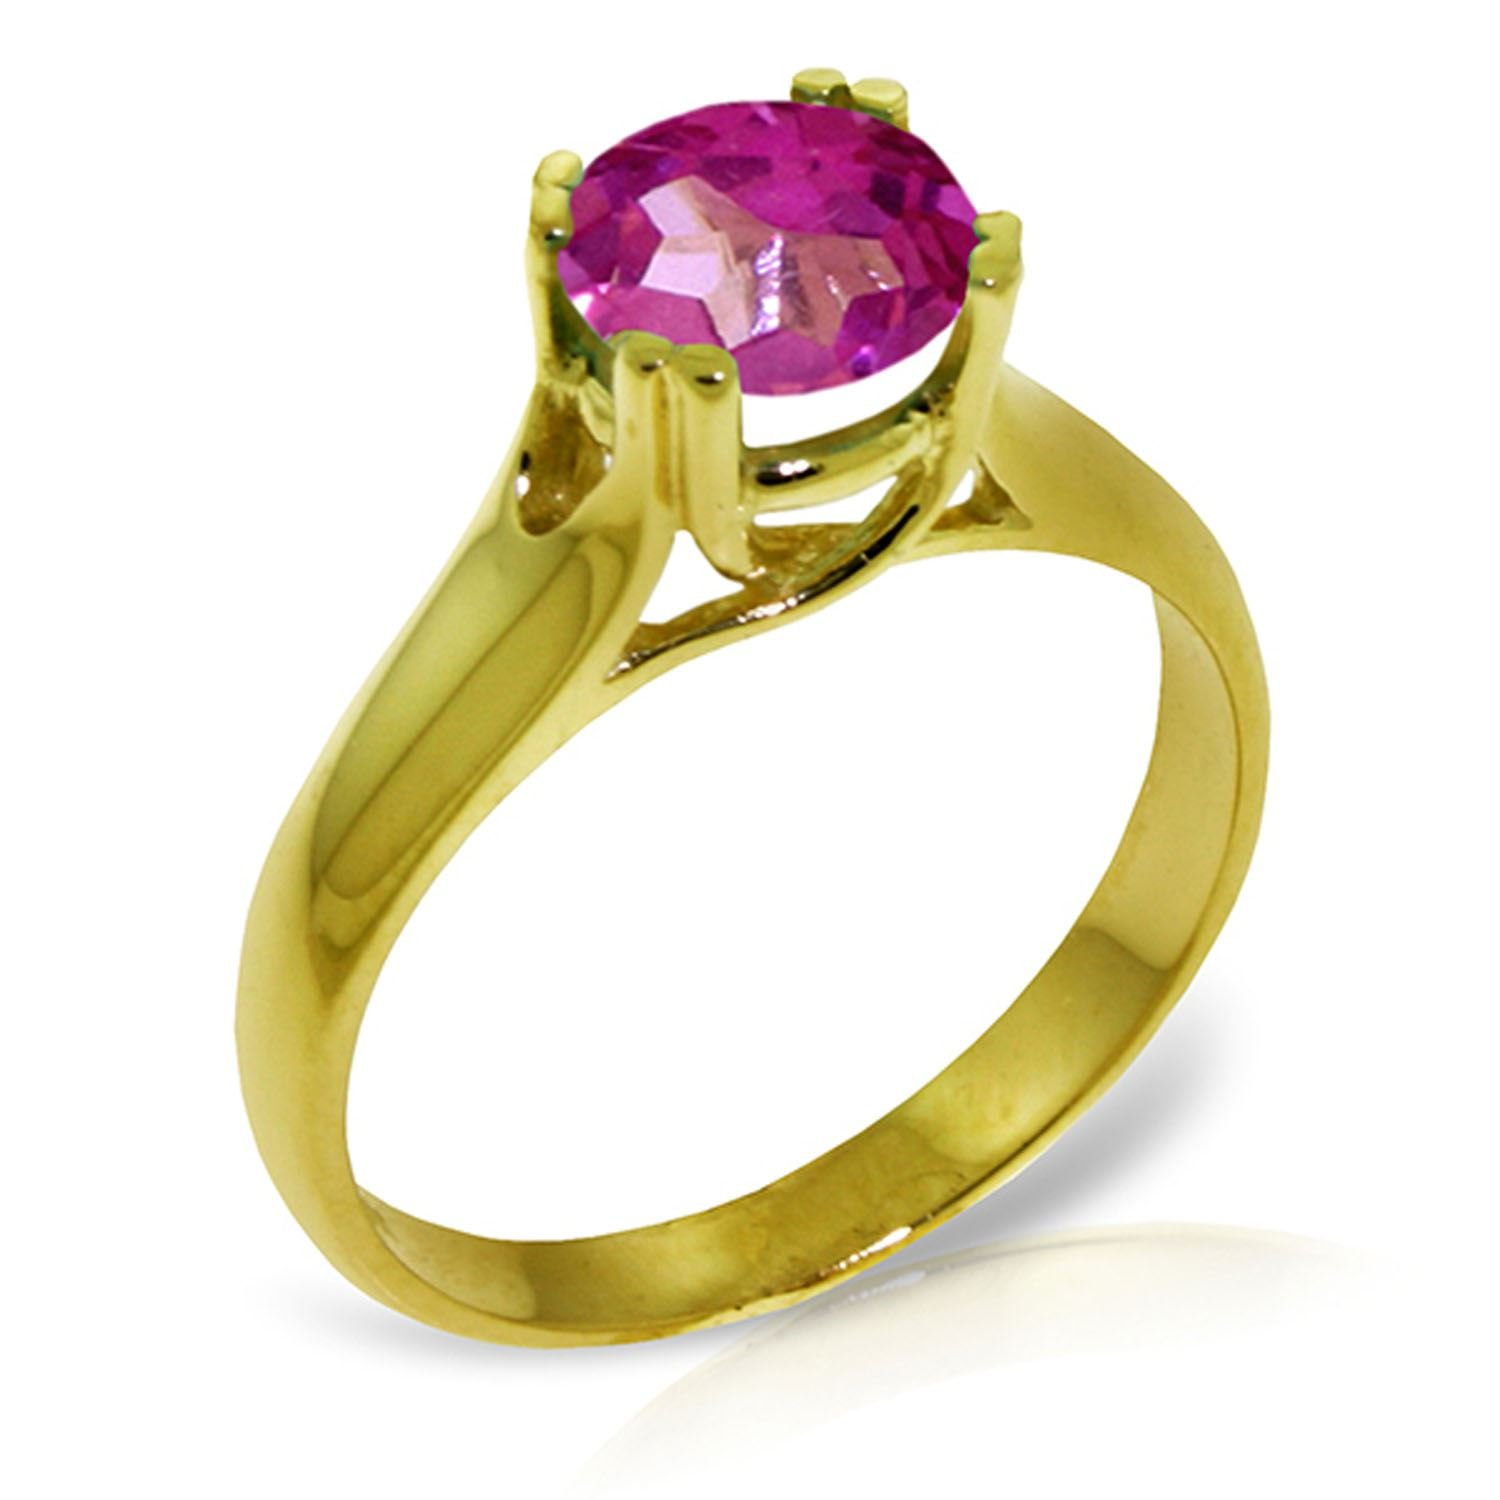 ALARRI 1.1 Carat 14K Solid Gold Love Doesn't Outgrow Pink Topaz Ring With Ring Size 9.5 by ALARRI (Image #1)